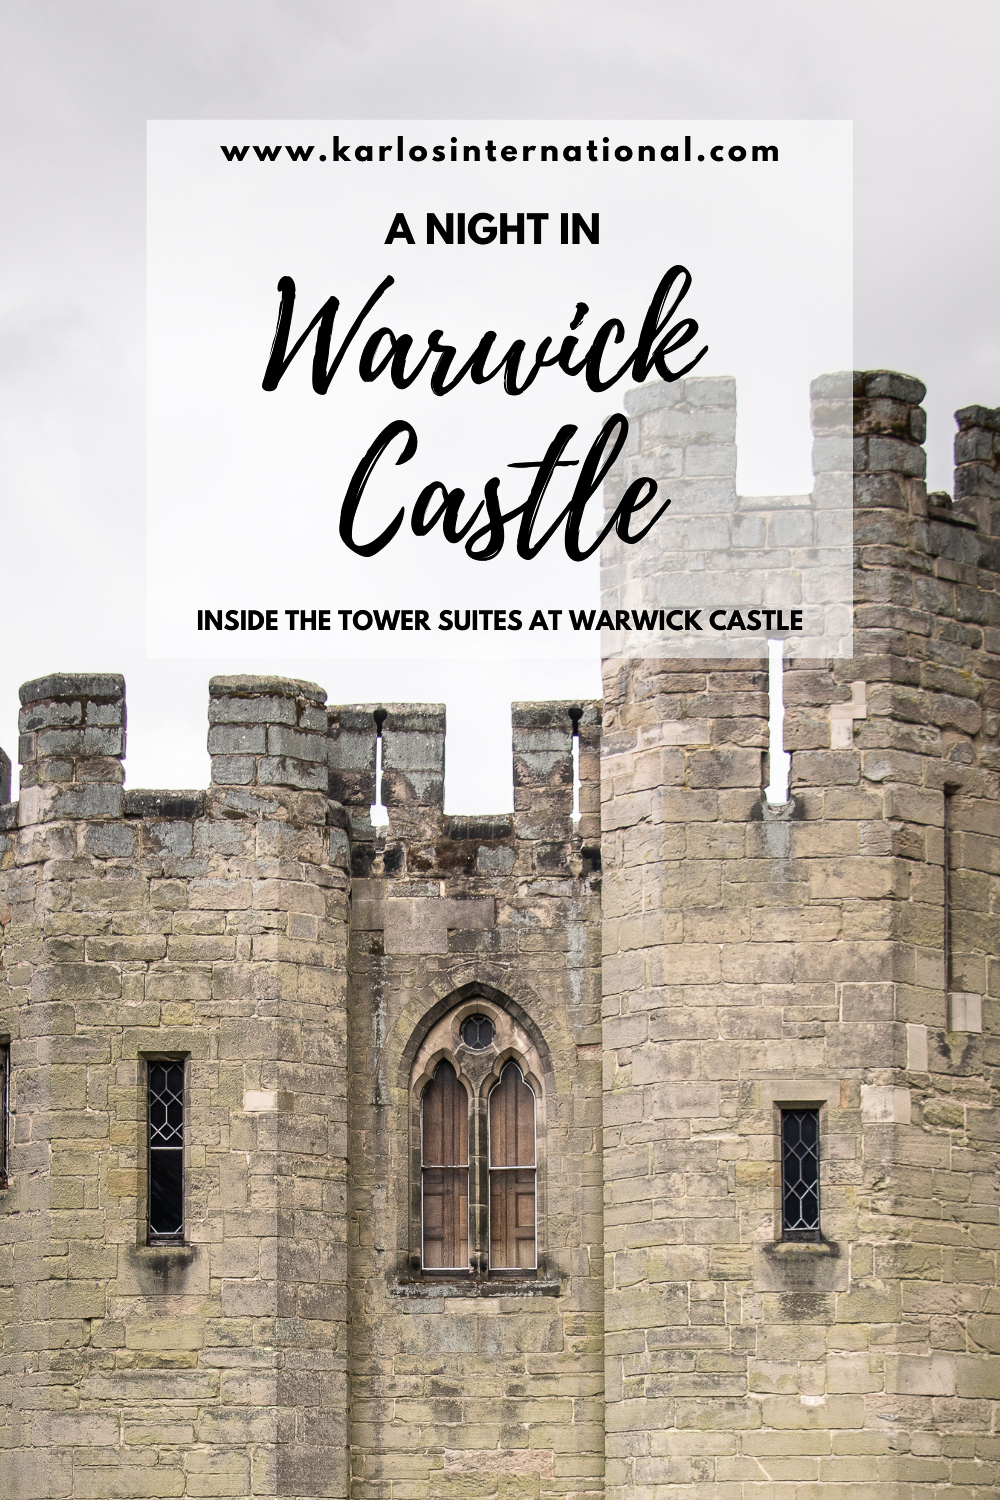 A night in Warwick Castle - Inside the tower suites at Warwick Castle - Pinterest Pin